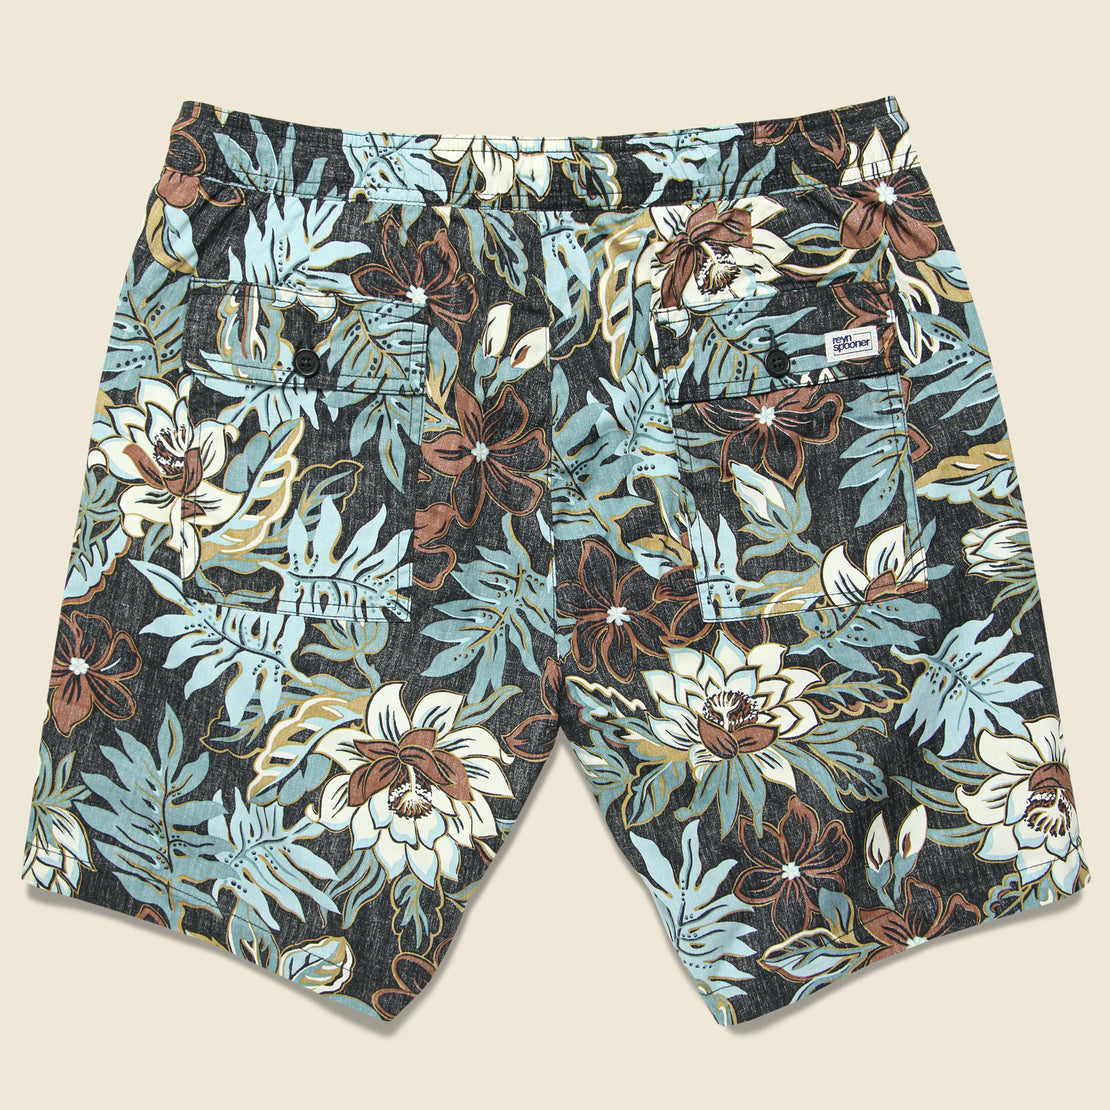 Vintage Hawaiian Floral Swim Trunk - Black